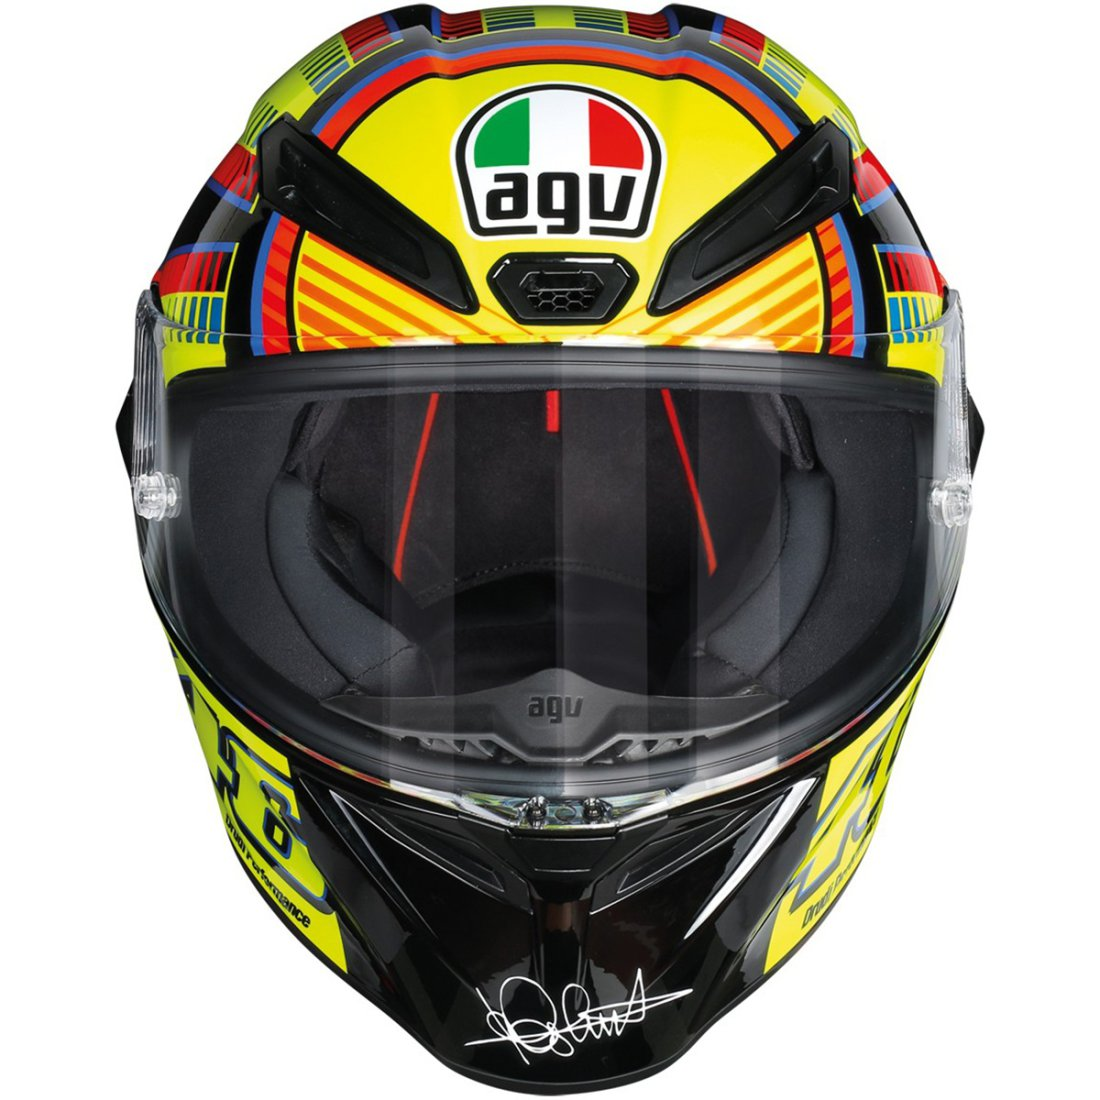 agv veloce s rossi soleluna helmet motocard. Black Bedroom Furniture Sets. Home Design Ideas